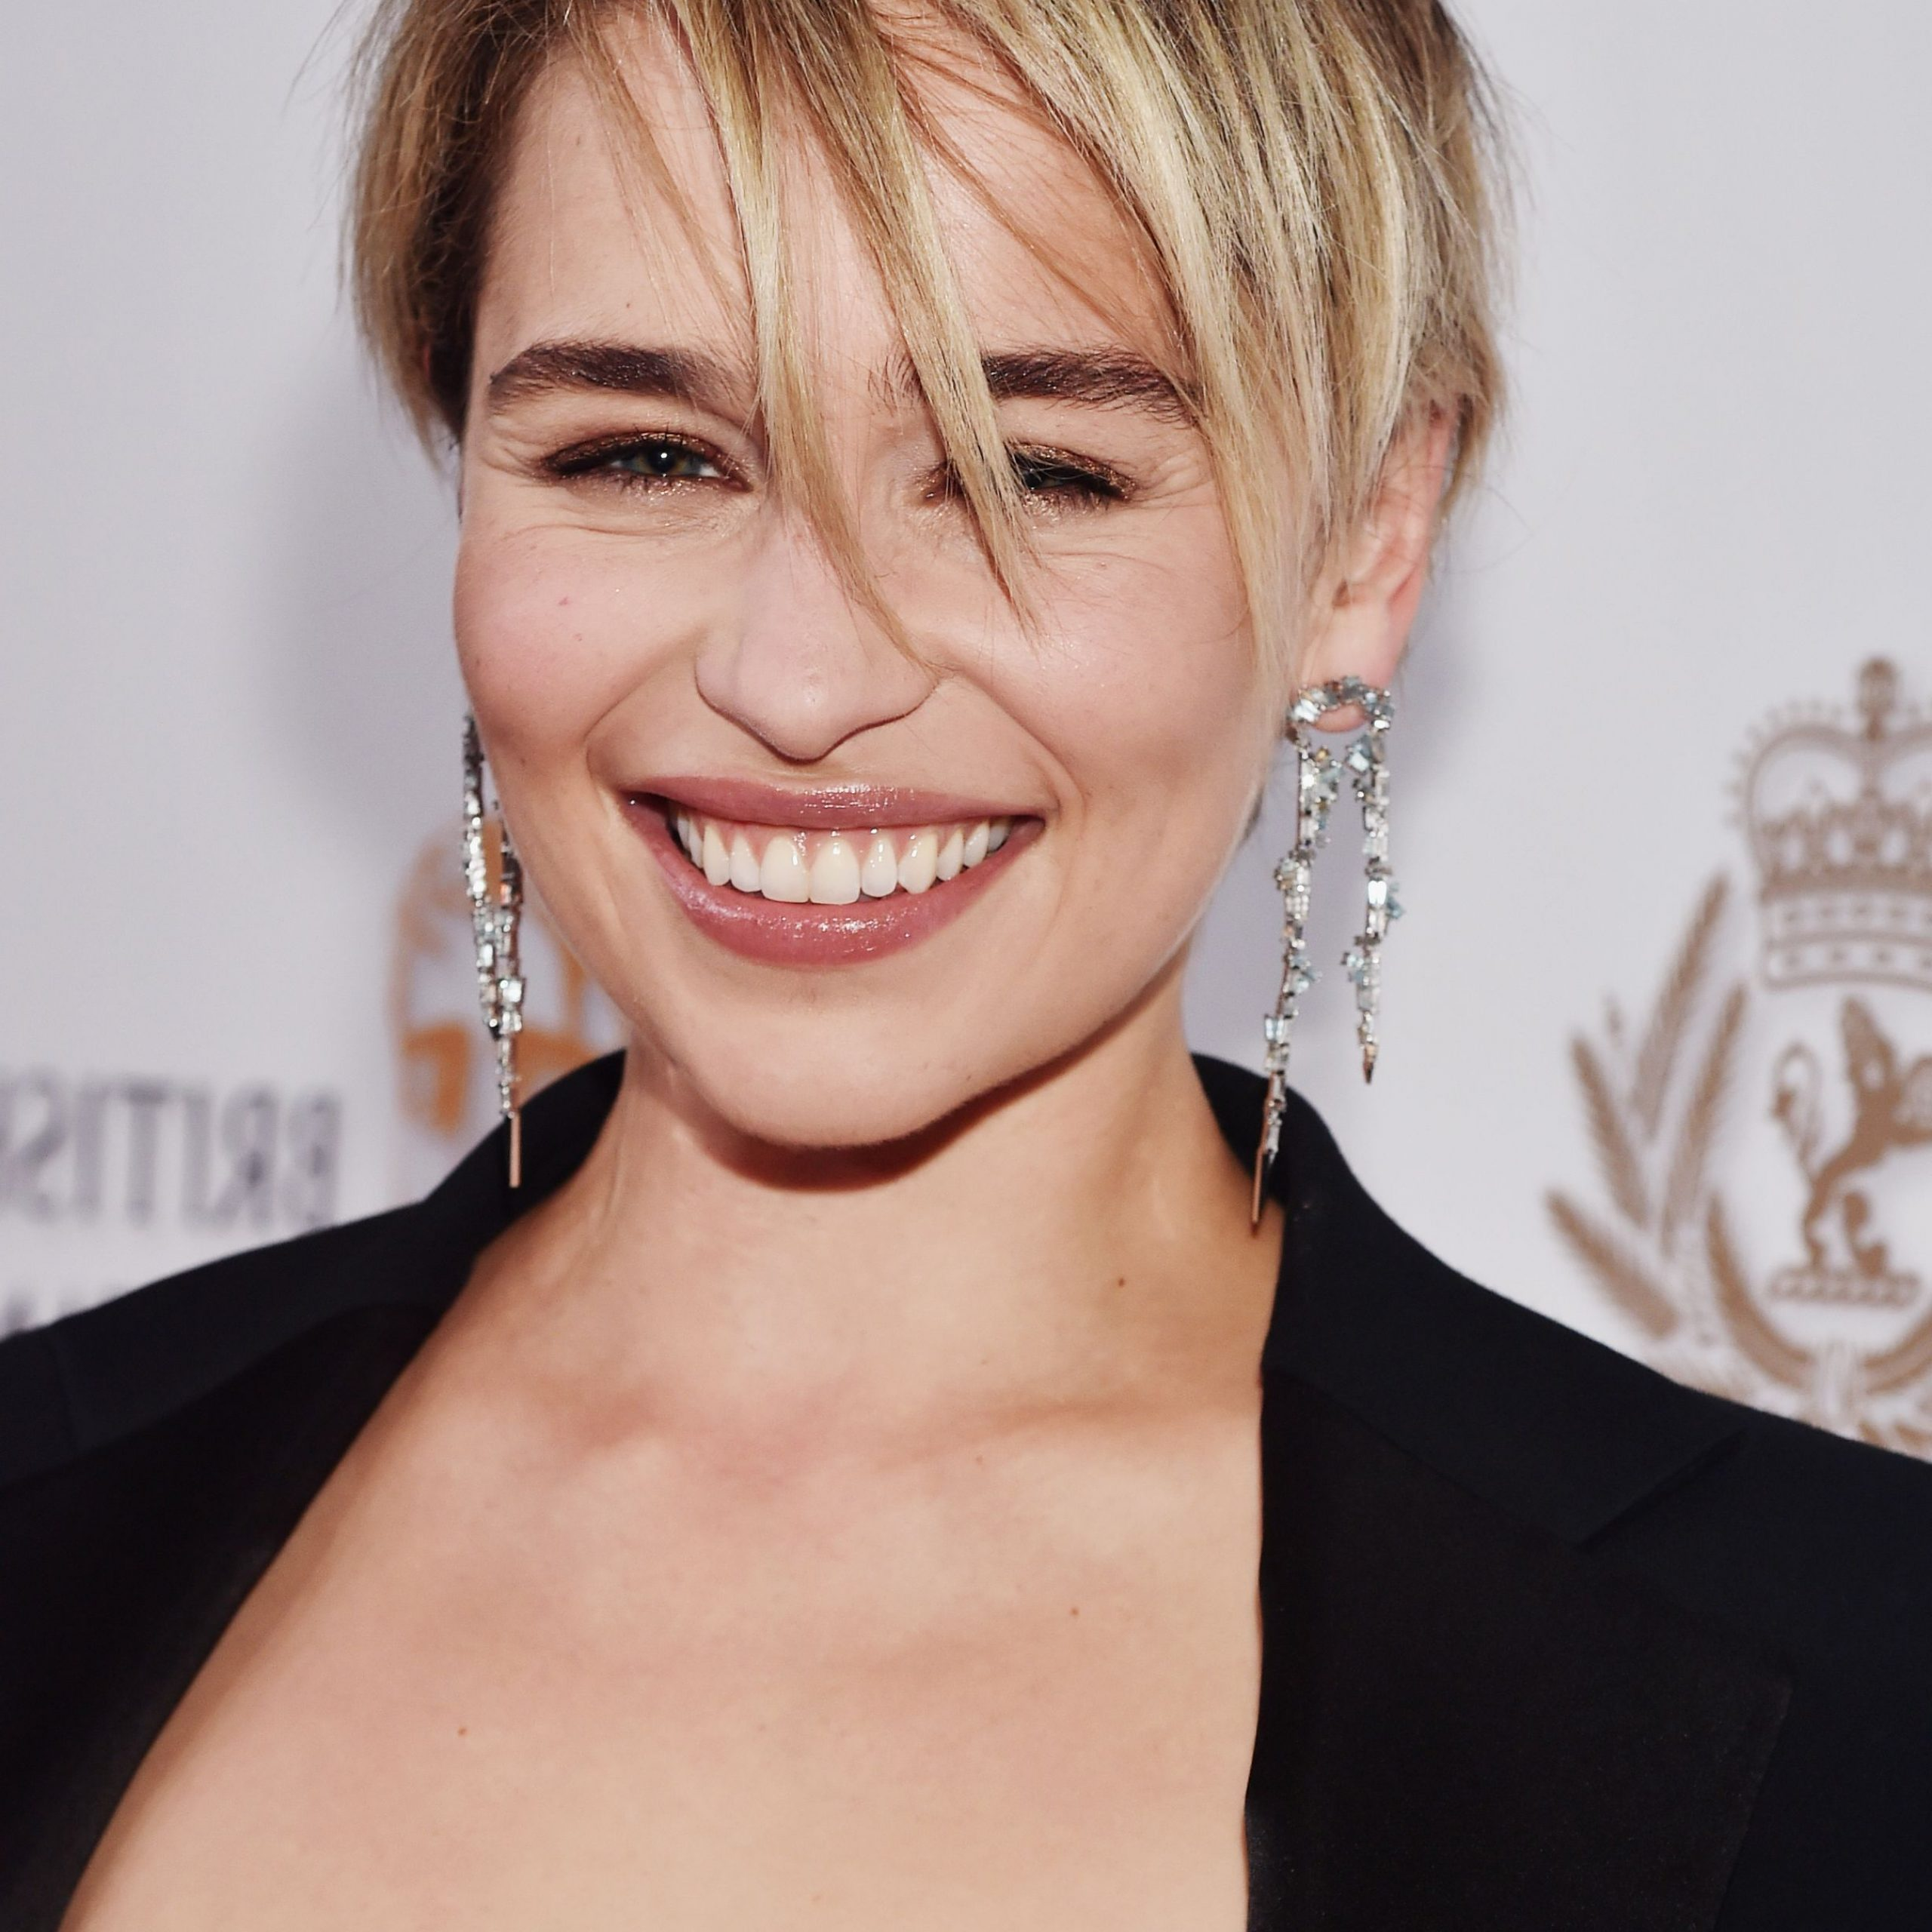 70 Best Pixie Cut Hairstyle Ideas 2019 – Cute Celebrity In Messy Highlighted Pixie Haircuts With Long Side Bangs (Gallery 13 of 20)